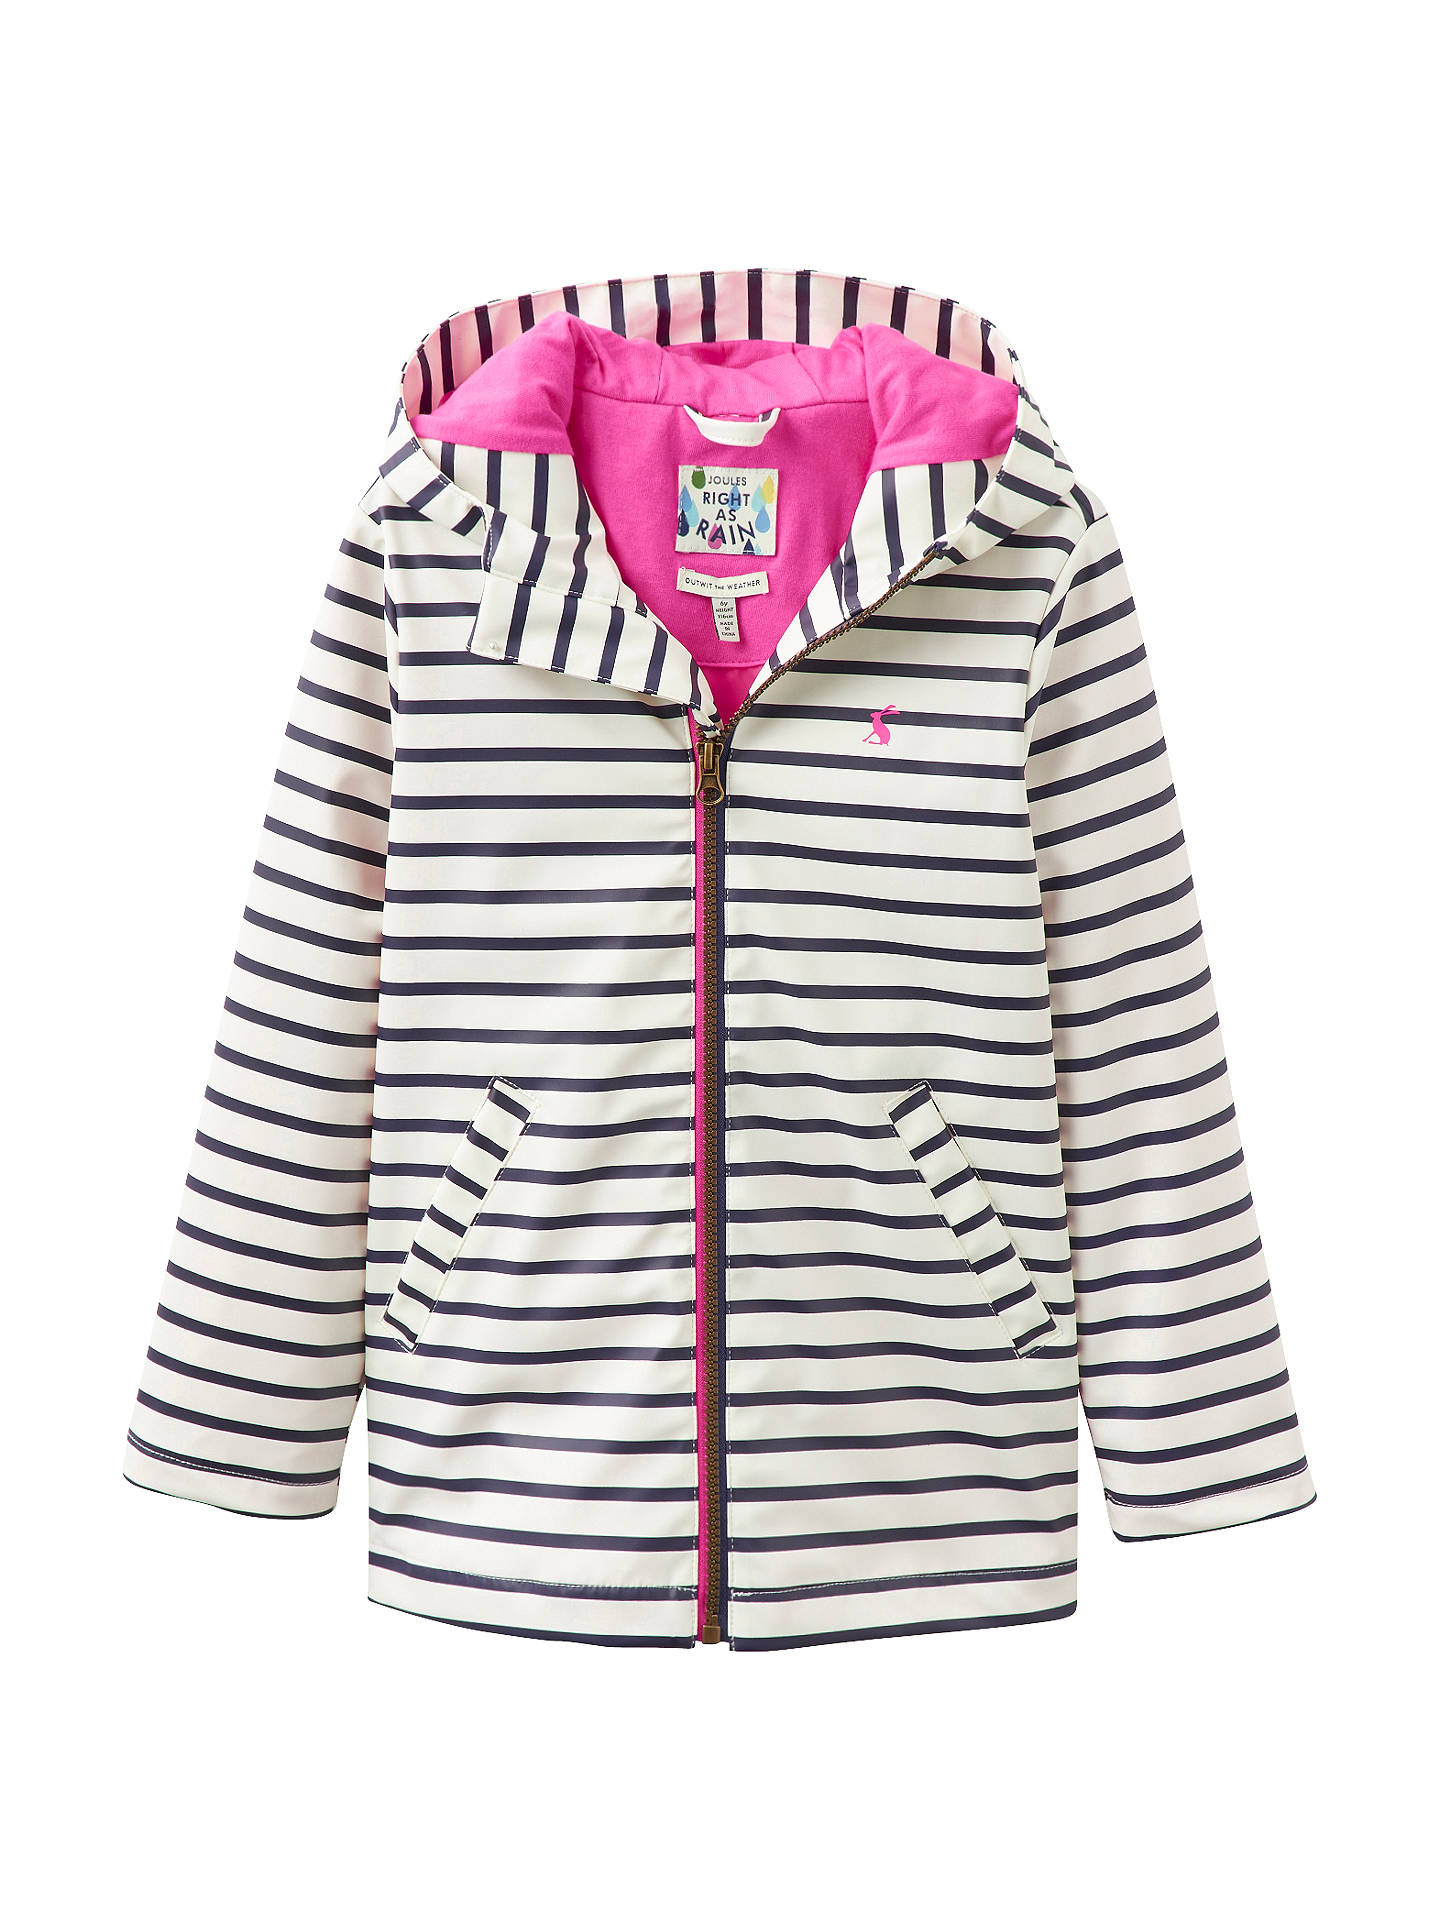 ce18f2e4ddd9 Little Joule Girls  Raindance Striped Waterproof Rain Coat